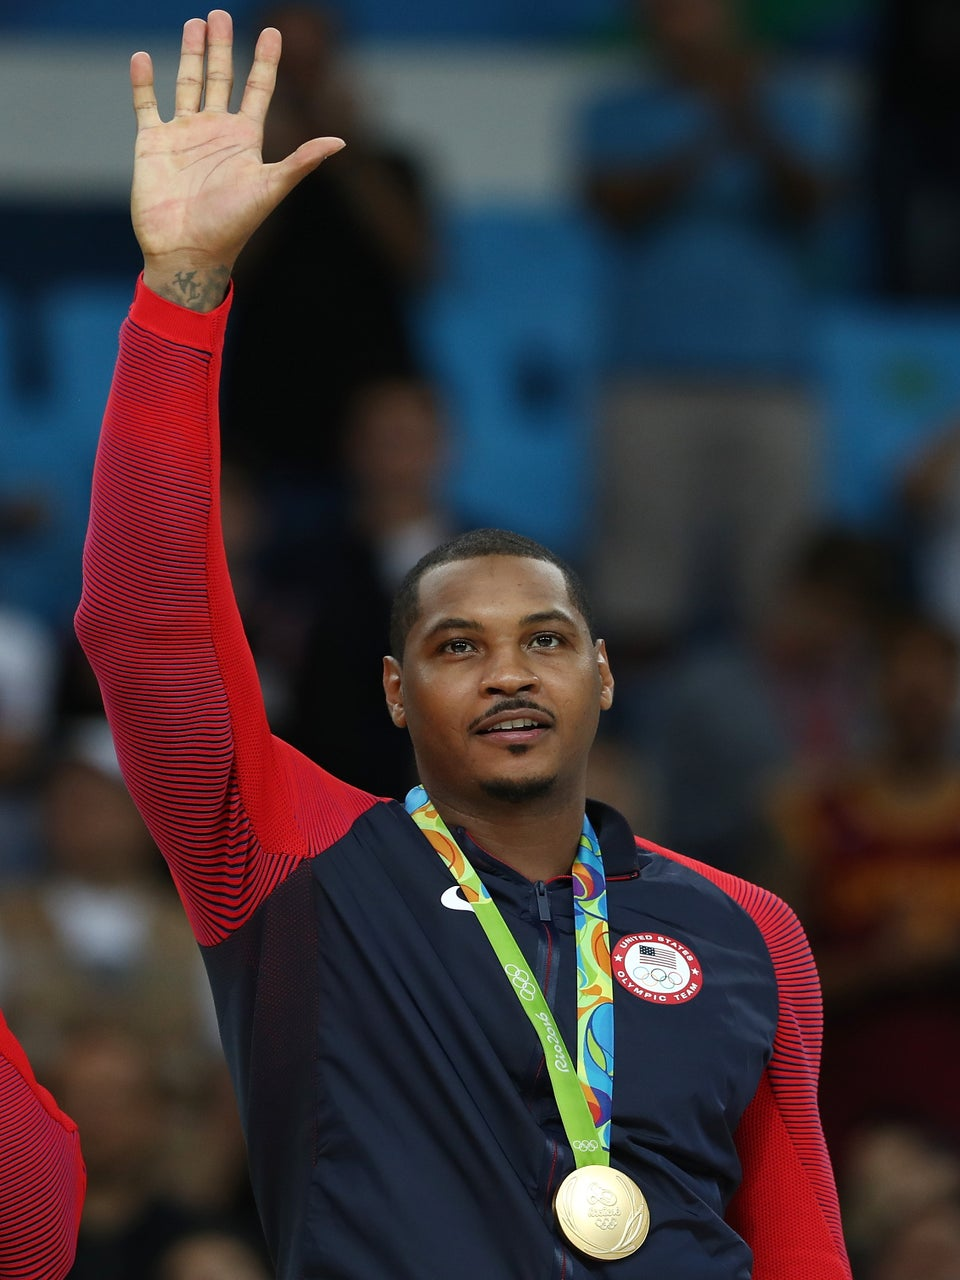 Carmelo Anthony Says Goodbye to Team USA After Winning Third Gold Medal at Olympics